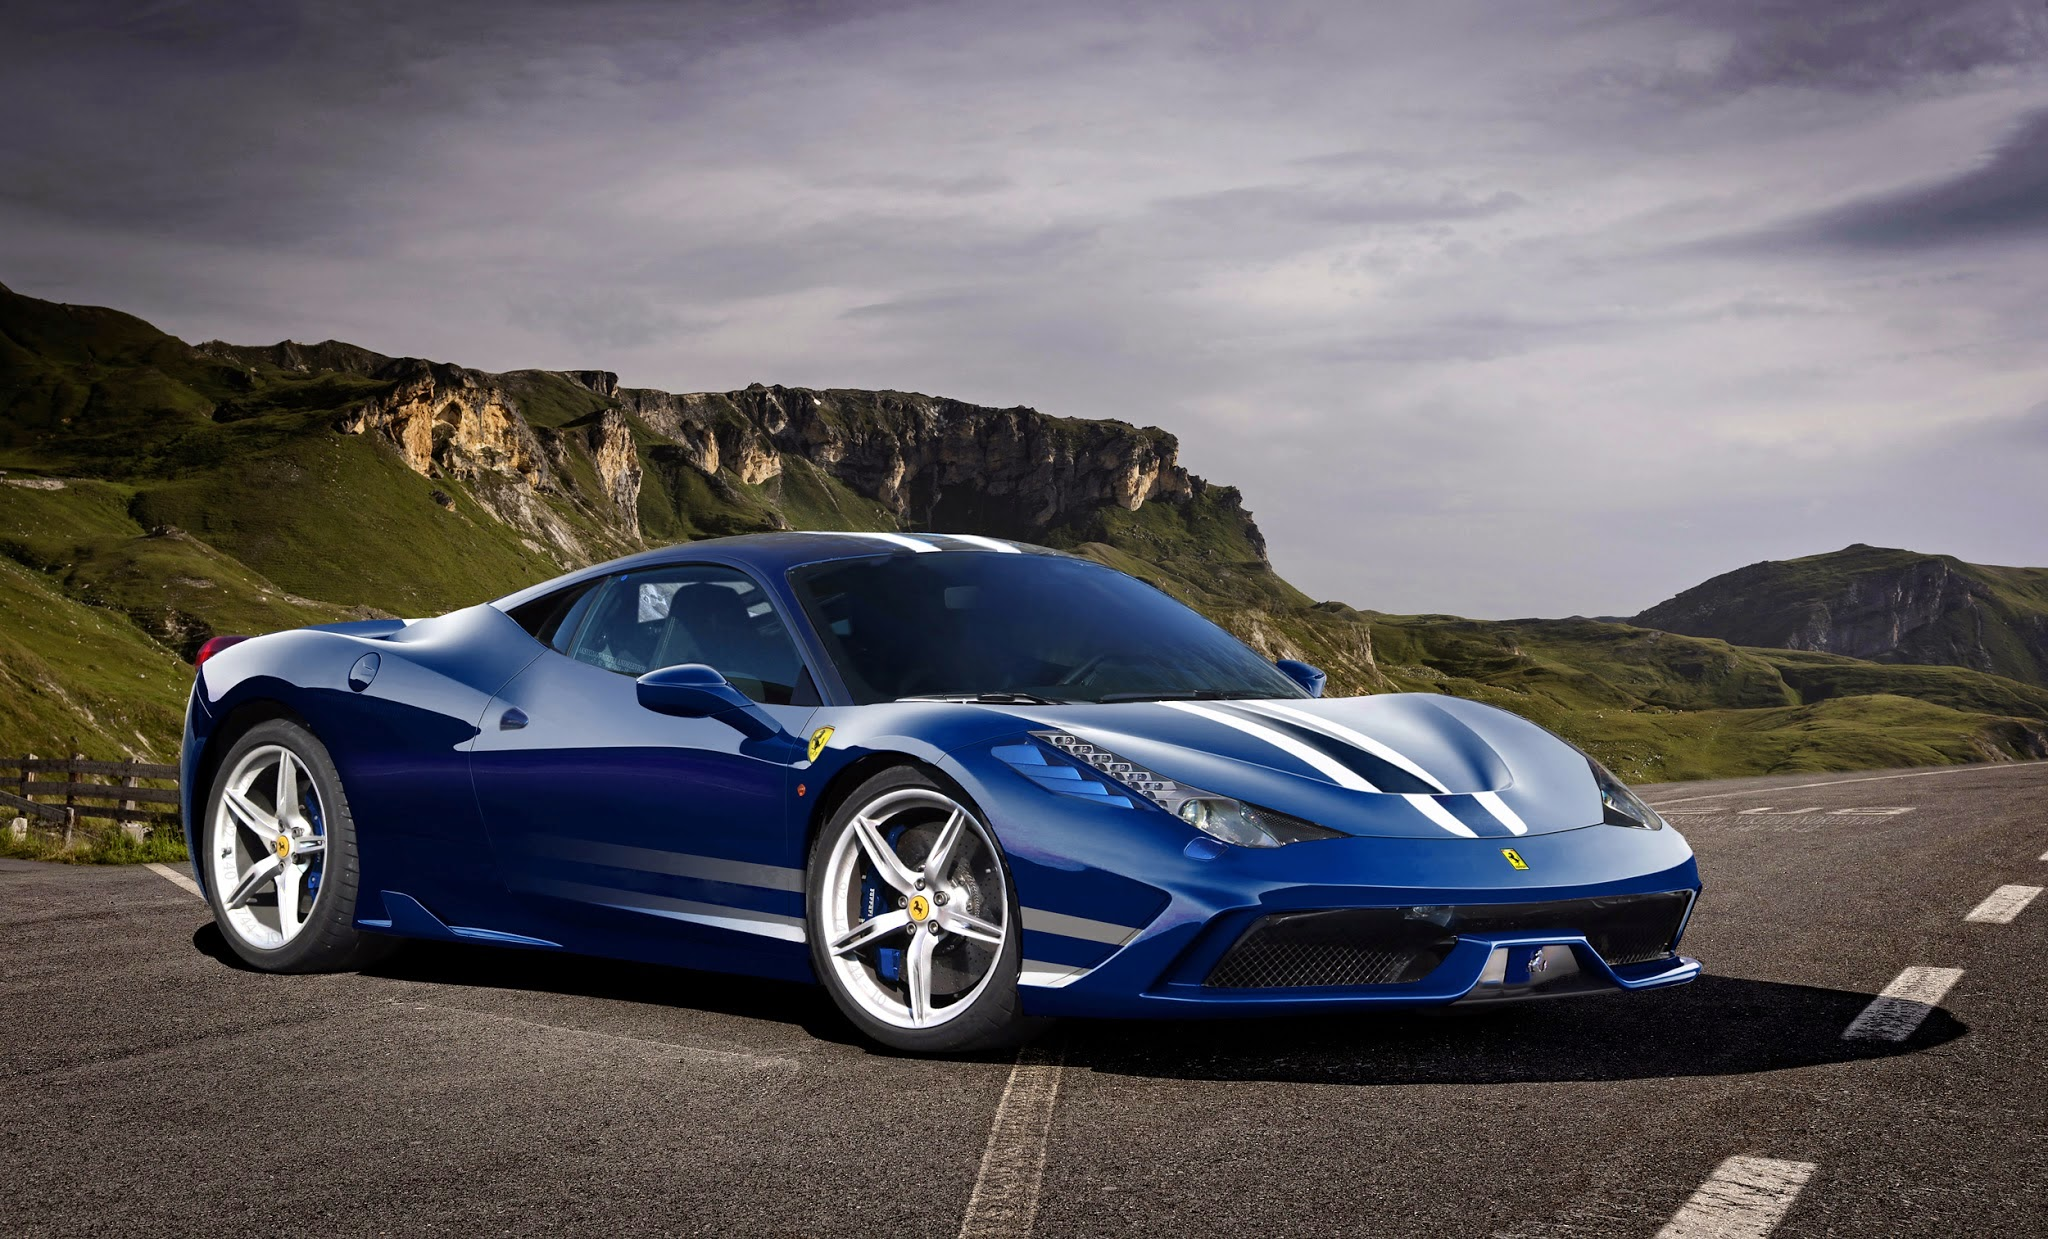 Ferrari 458 Speciale 2013 Supercar Car Image Hd Download 2048x1239 Download Hd Wallpaper Wallpapertip